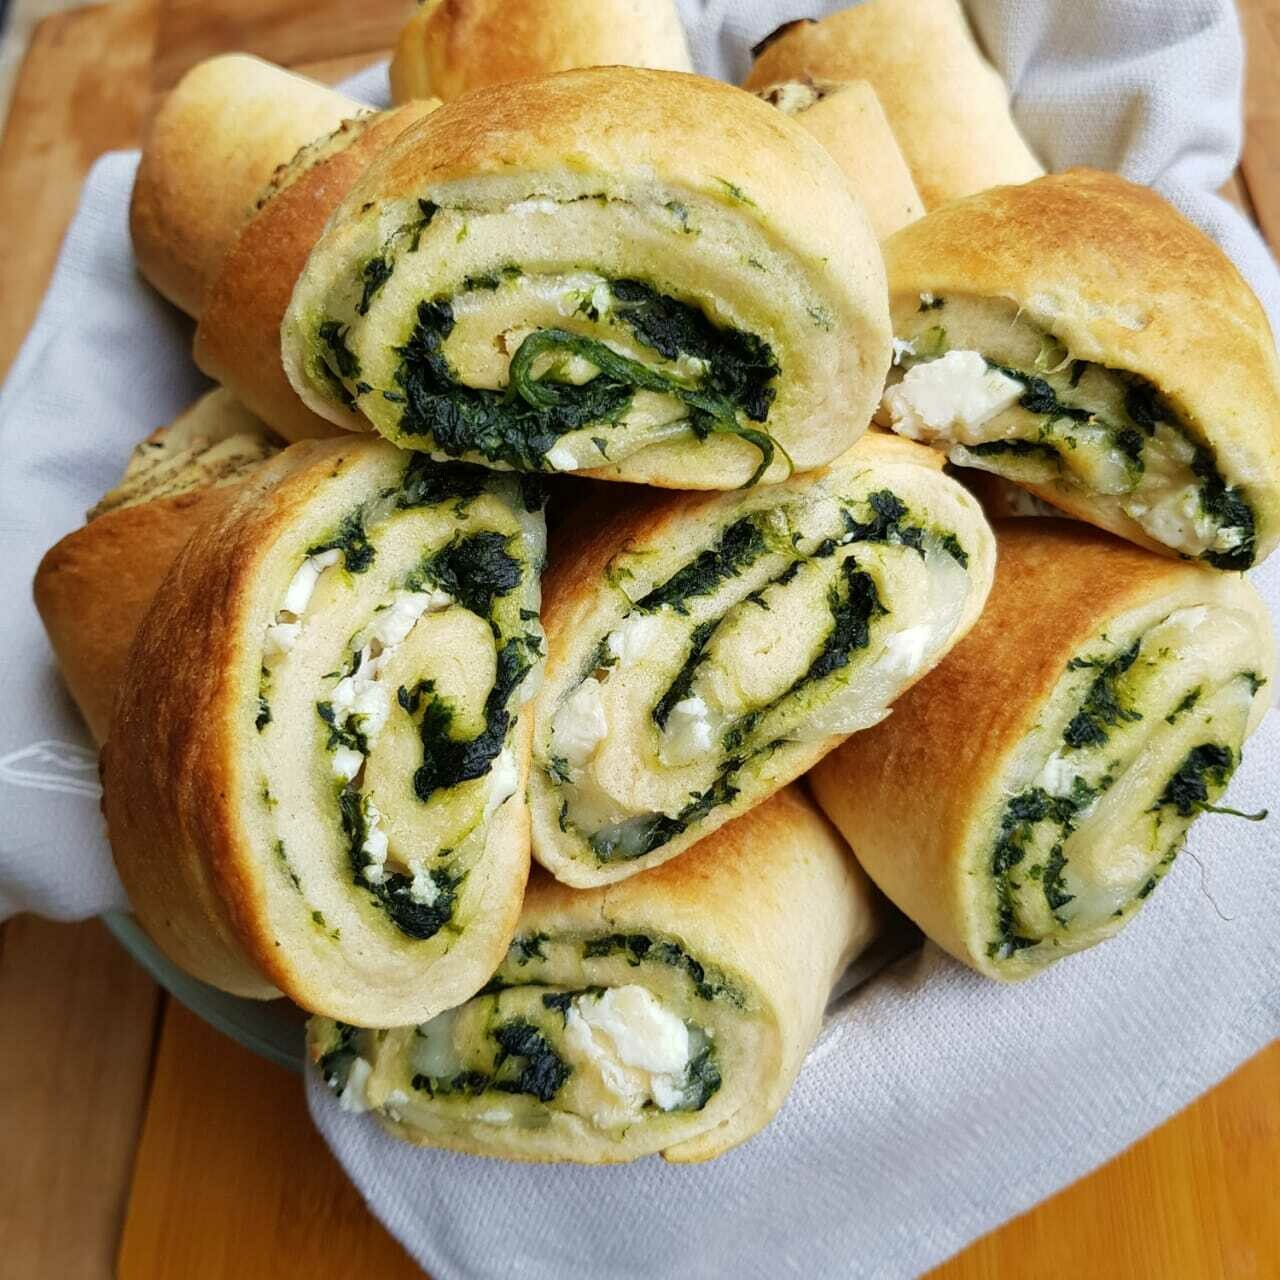 Rolls Spinach and Cheese لفائف السبانخ والجبن (Pack of 6) - Crafting Delices